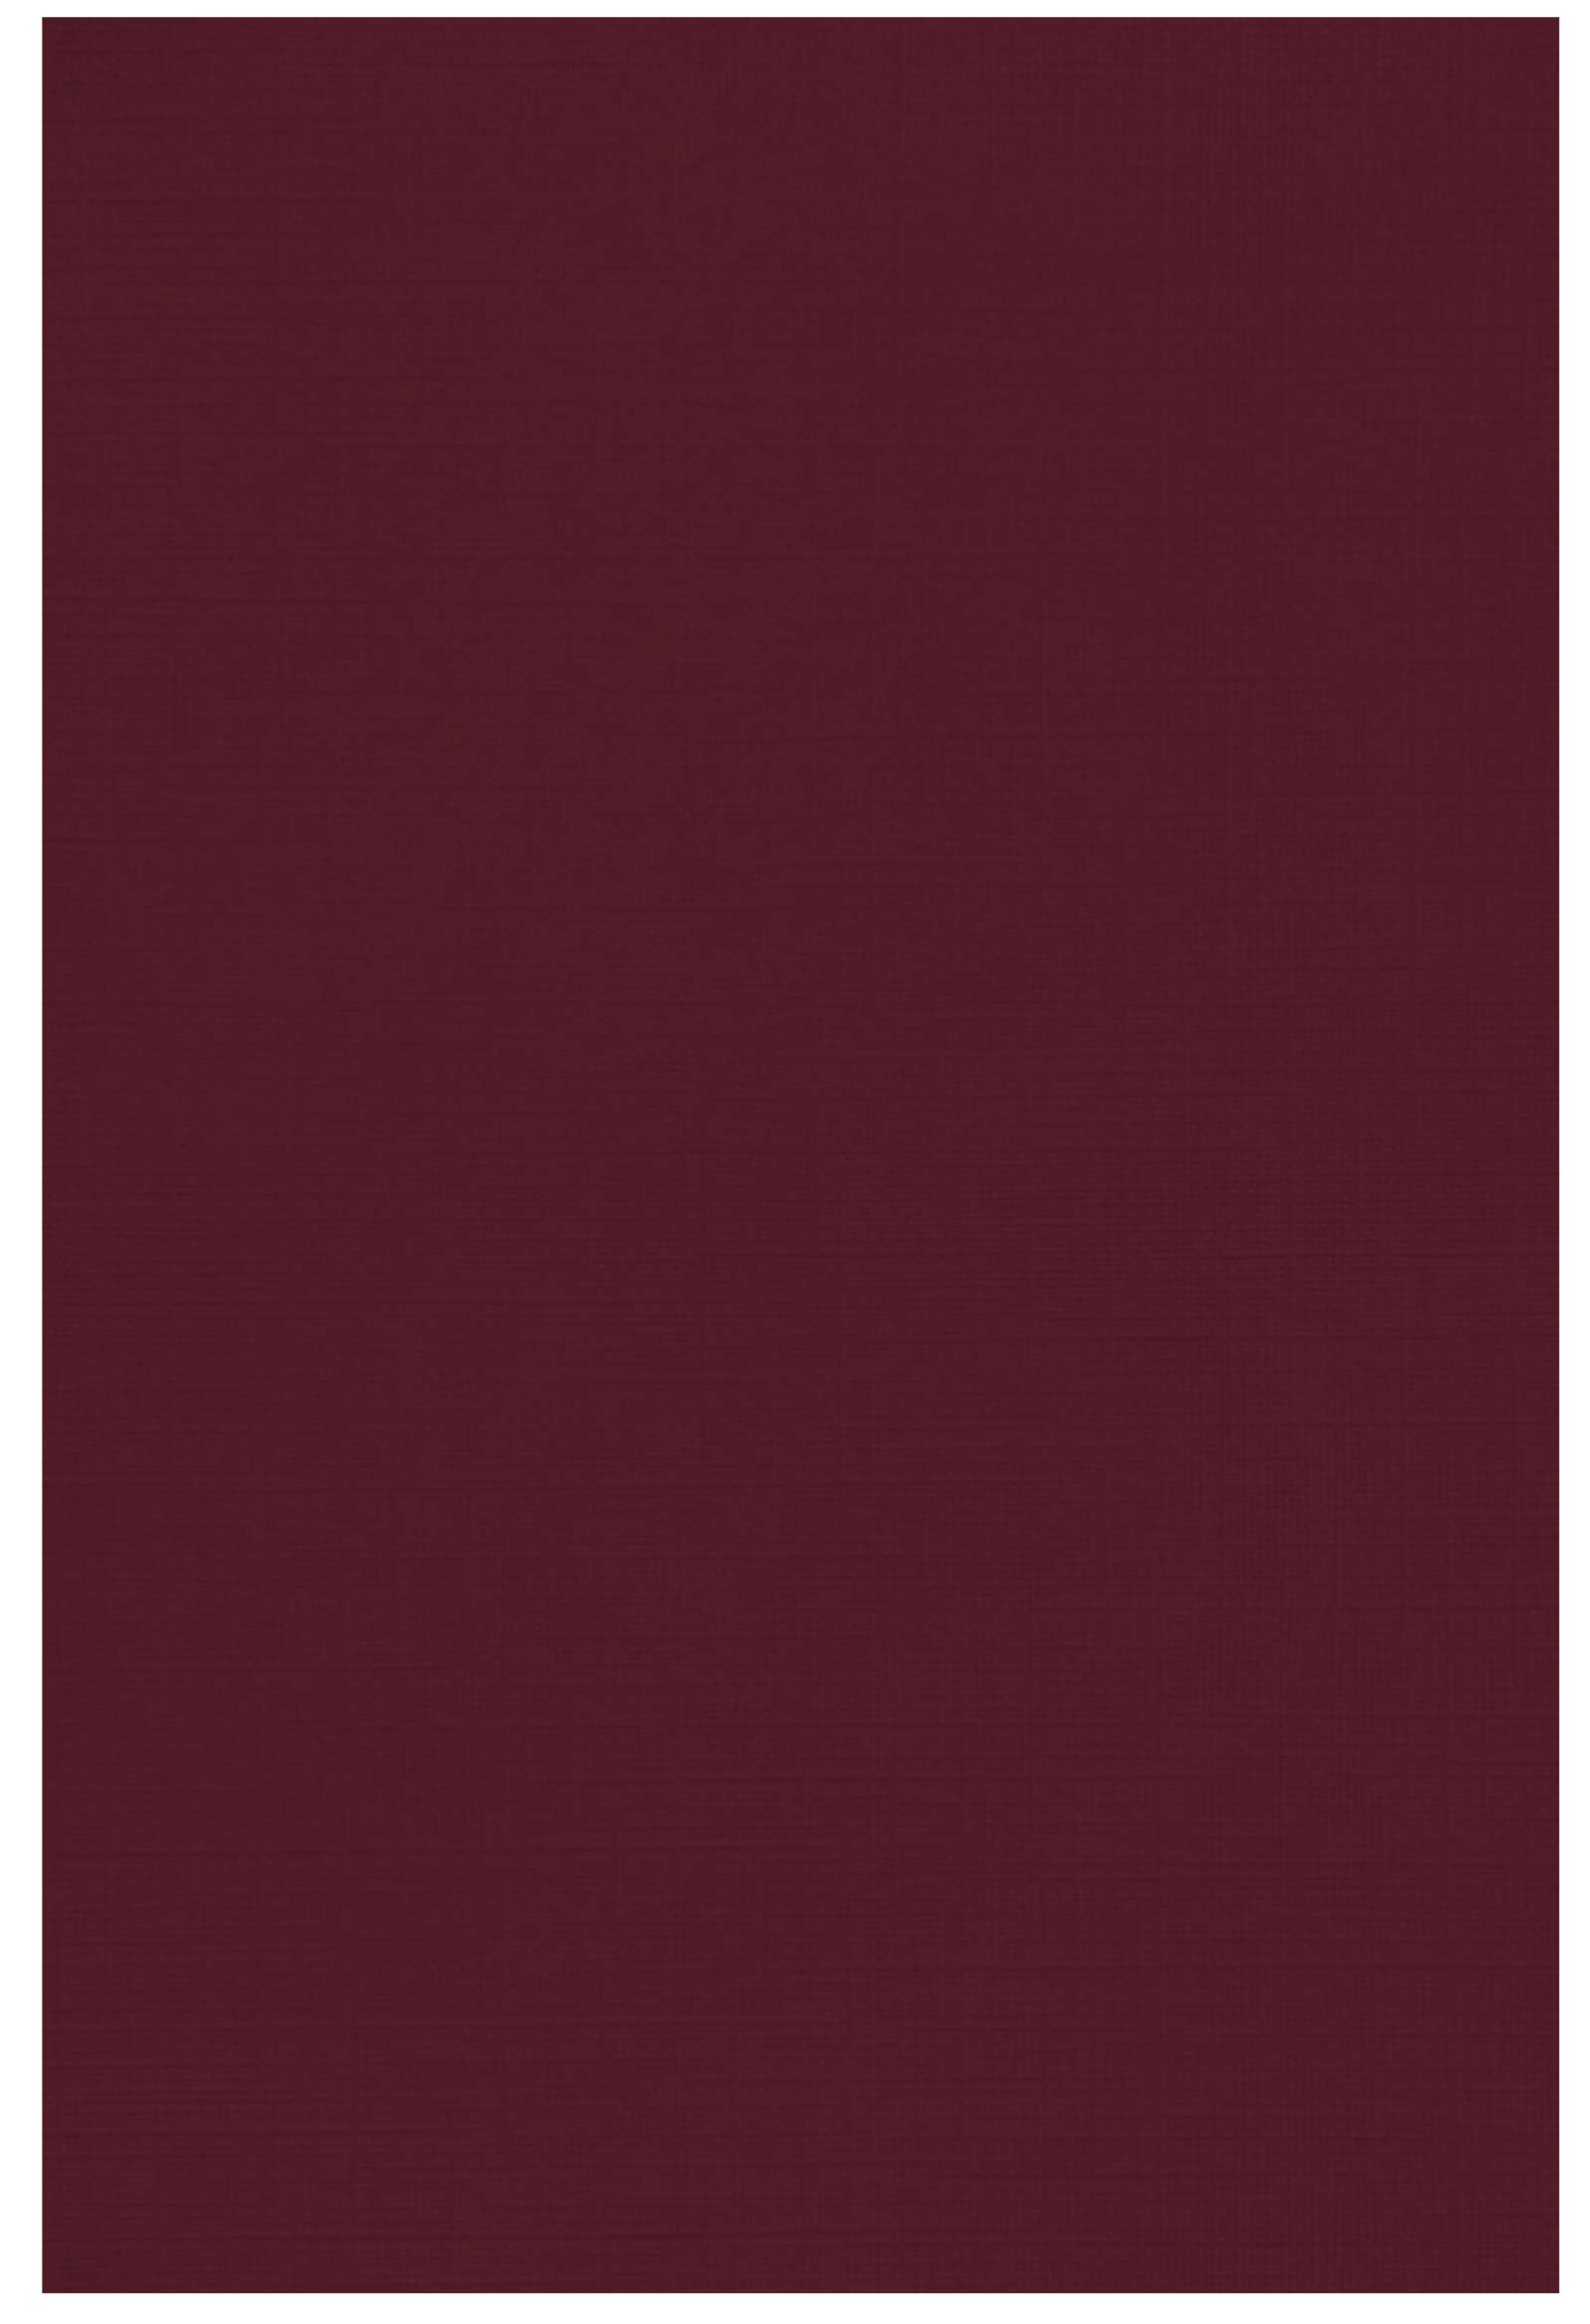 12 x 18 Cardstock - Burgundy Linen (50 Qty.) | Perfect for Holiday Crafting, Invitations, Scrapbooking, Cards and so much more! |1218-C-BGLI-50 by LUXPaper